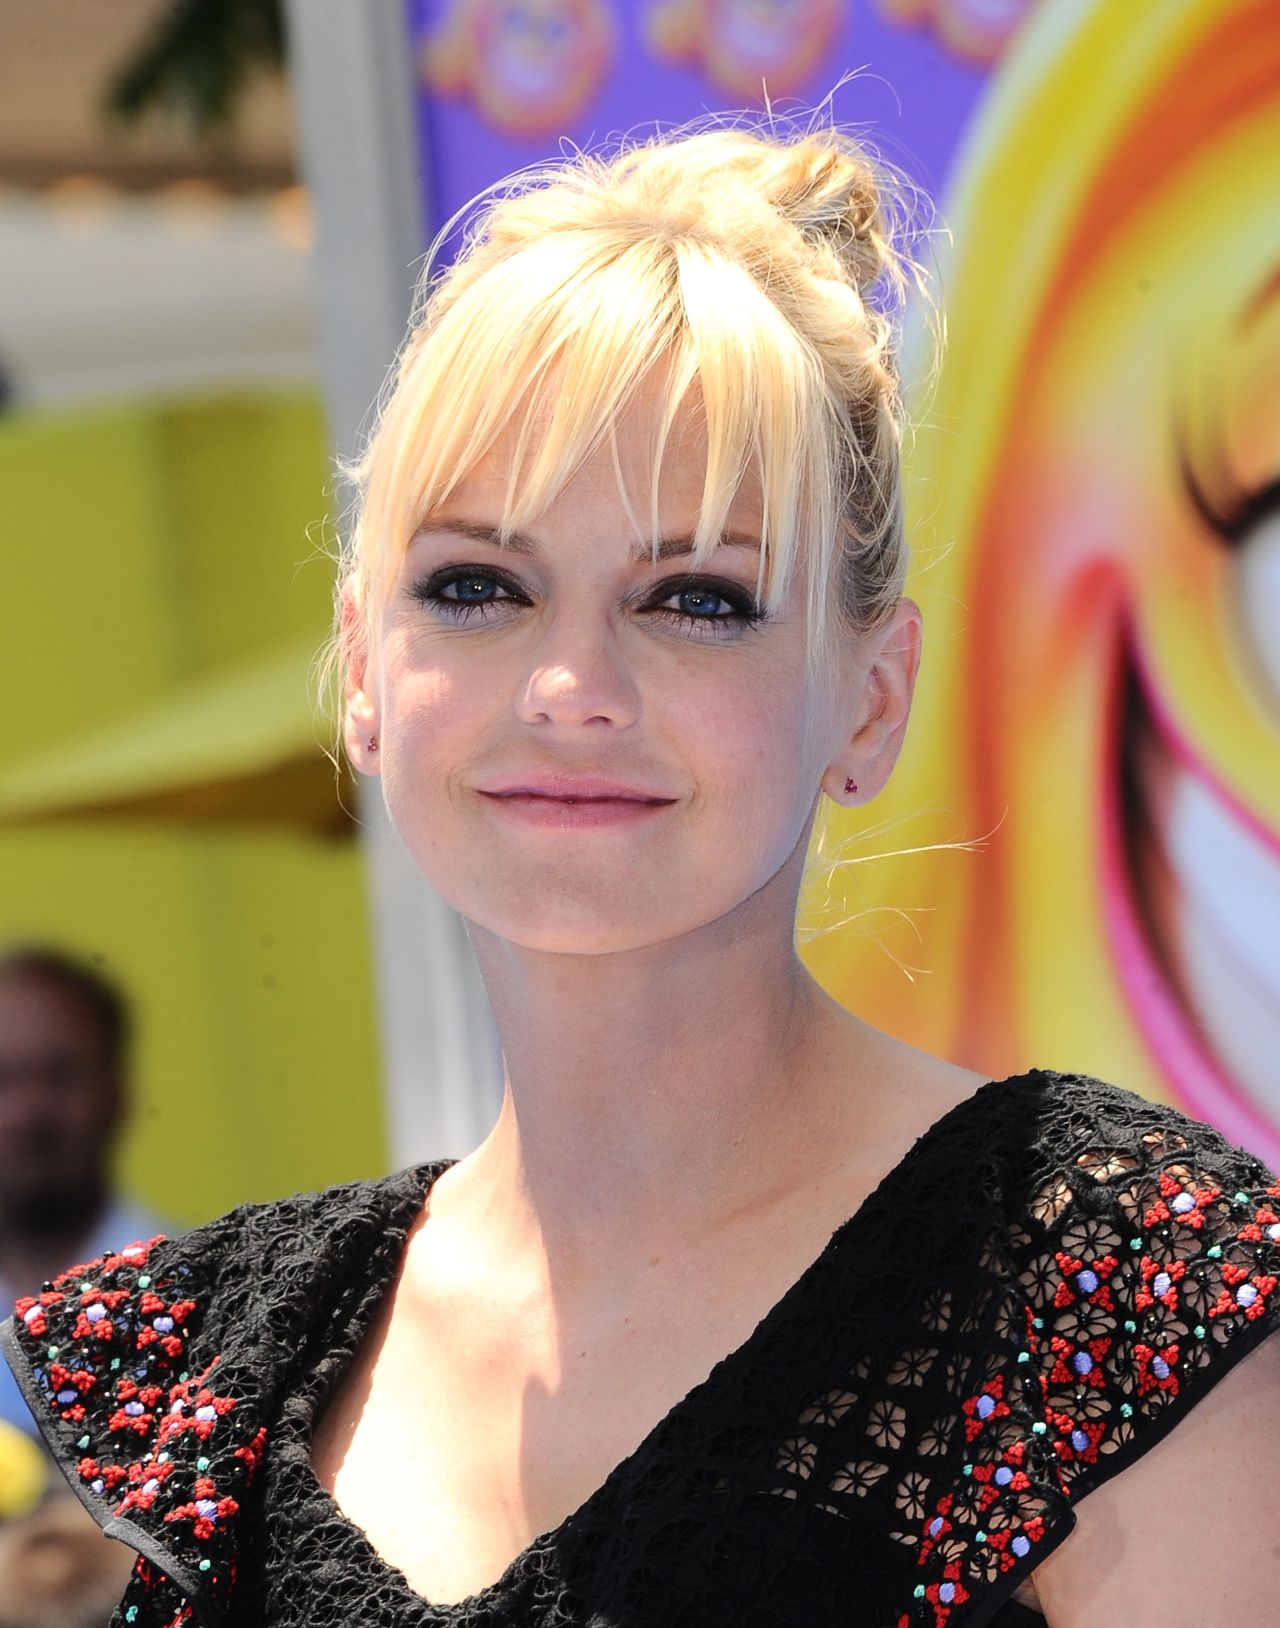 Anna Faris Quot The Emoji Movie Quot Premiere In Westwood 07 23 2017